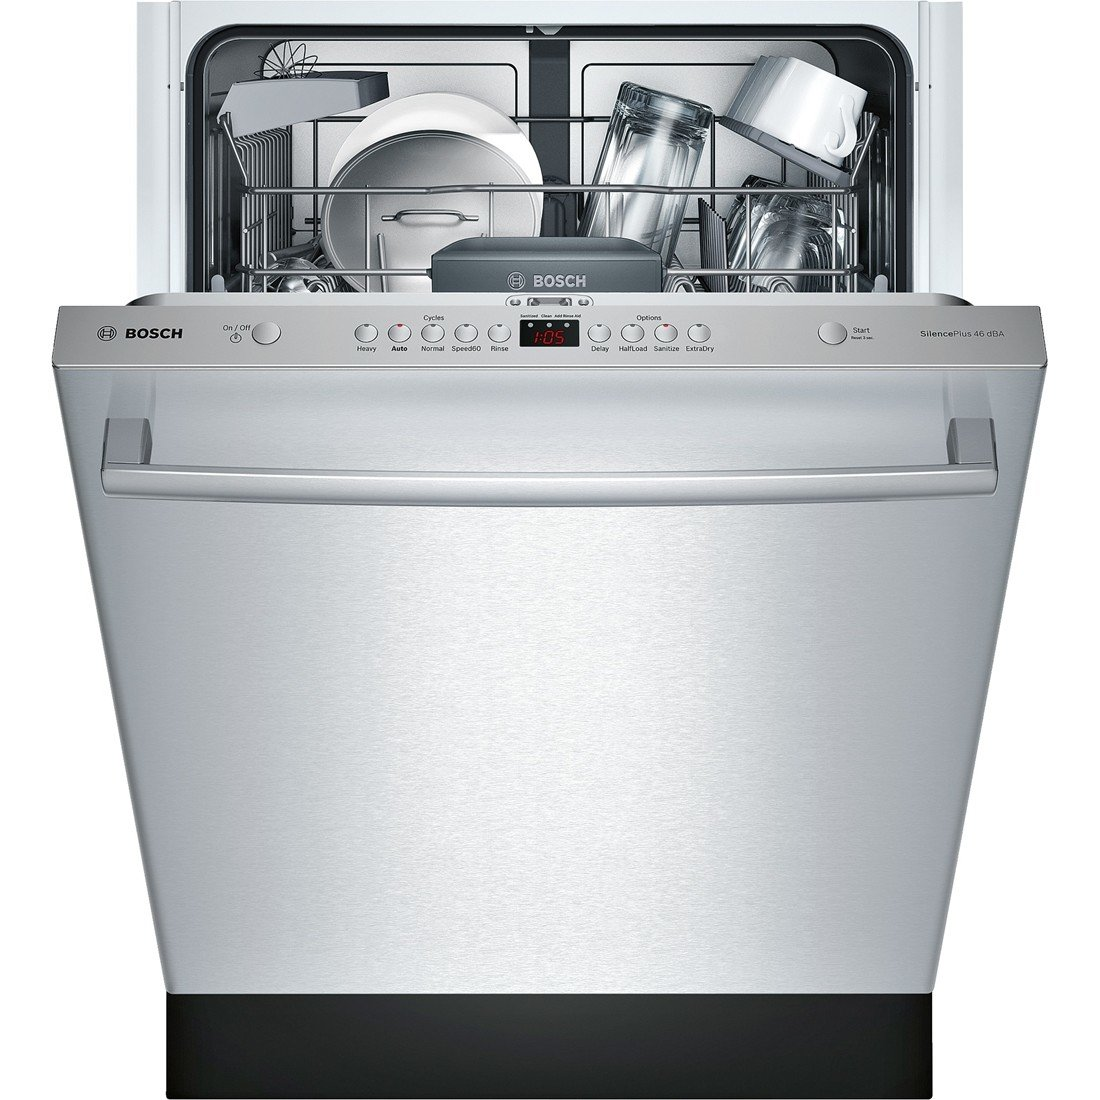 amazon com shx5av55uc 24 ascenta energy star rated dishwasher with rh amazon com Diagram to Install a Dishwasher Bosch Dishwasher Electrical Connection